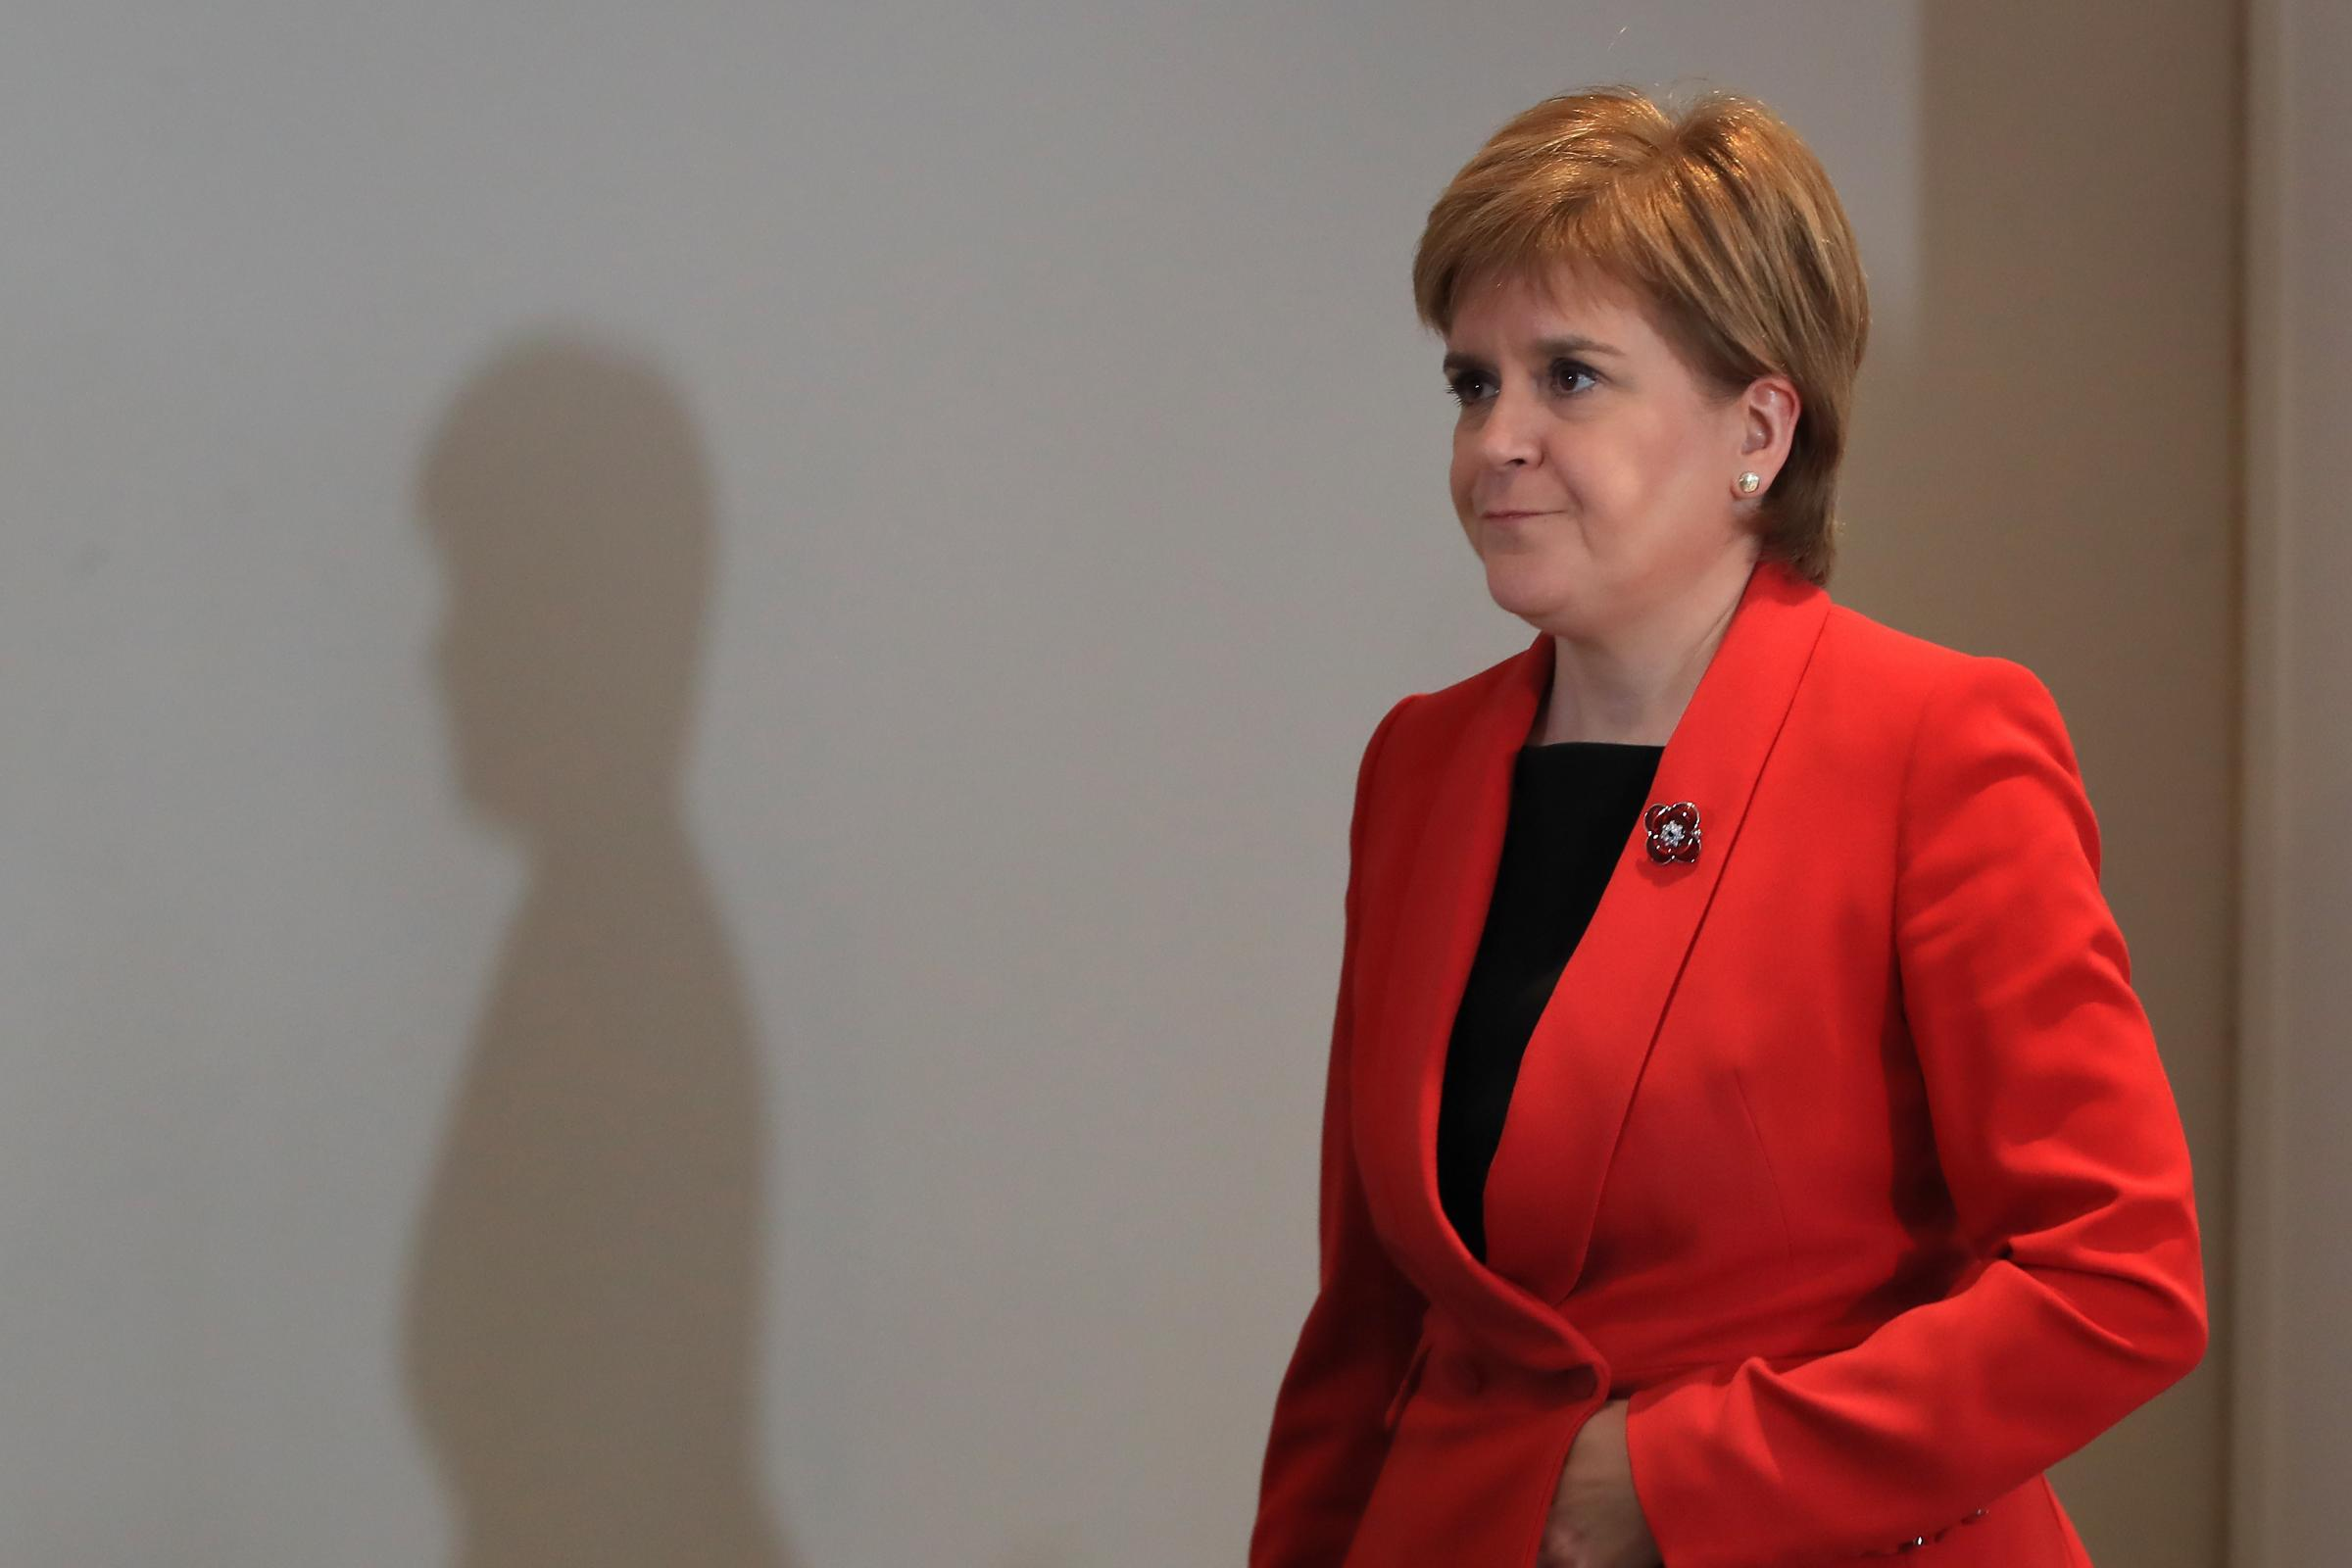 SNP: Scotland should have same opportunity as Northern Ireland from Brexit